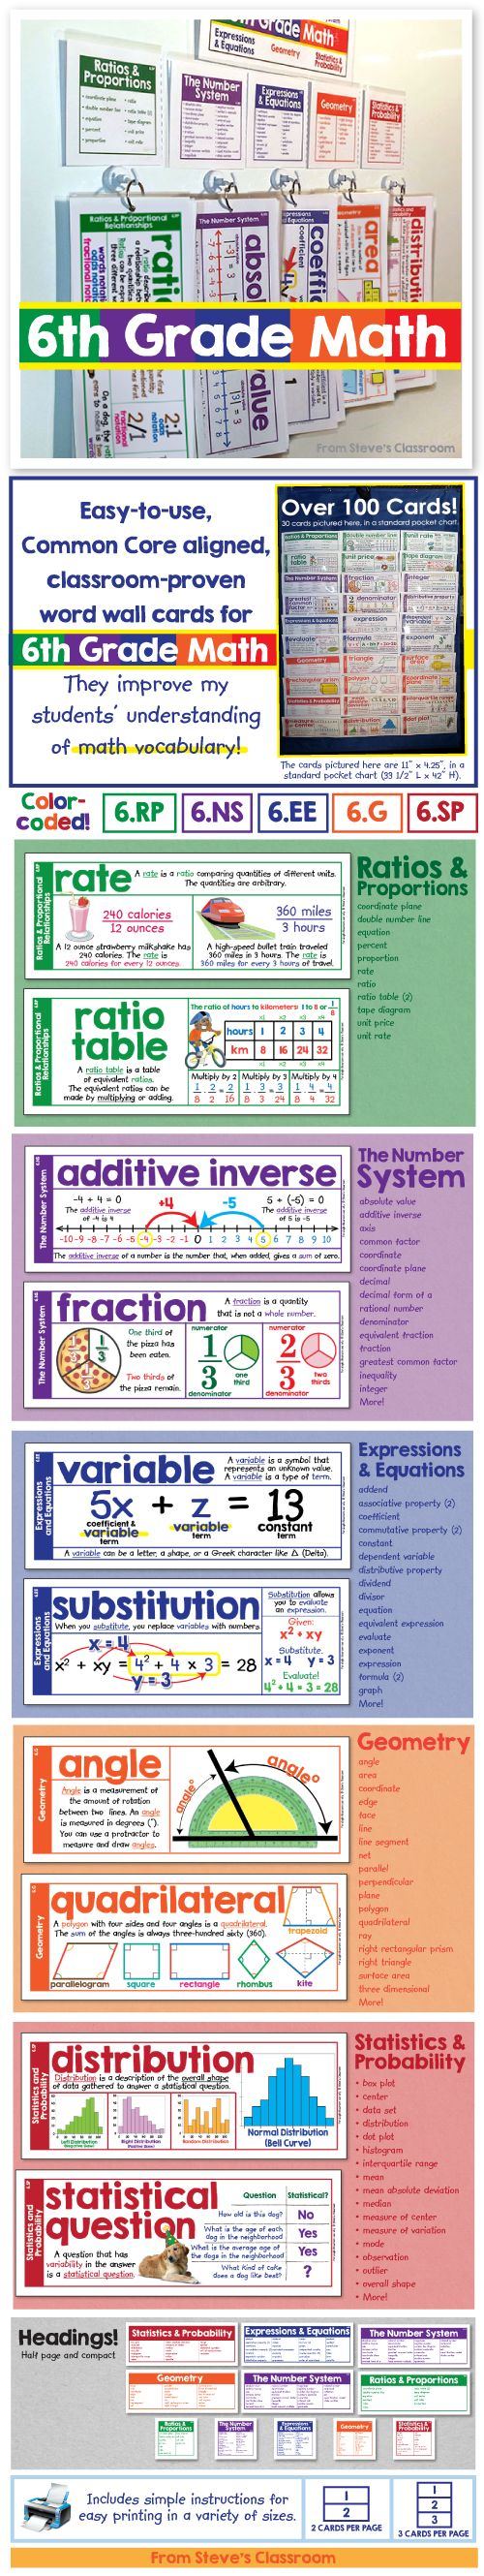 Word wallI cards for sixth grade math! Over one hundred terms for sixth grade math, all in one compact space on my classroom wall. The definitions, examples, and illustrations help students understand sixth grade math vocabulary. As an added value, the cards can be printed three per page, black and white, making them perfect for pasting into an interactive notebook.